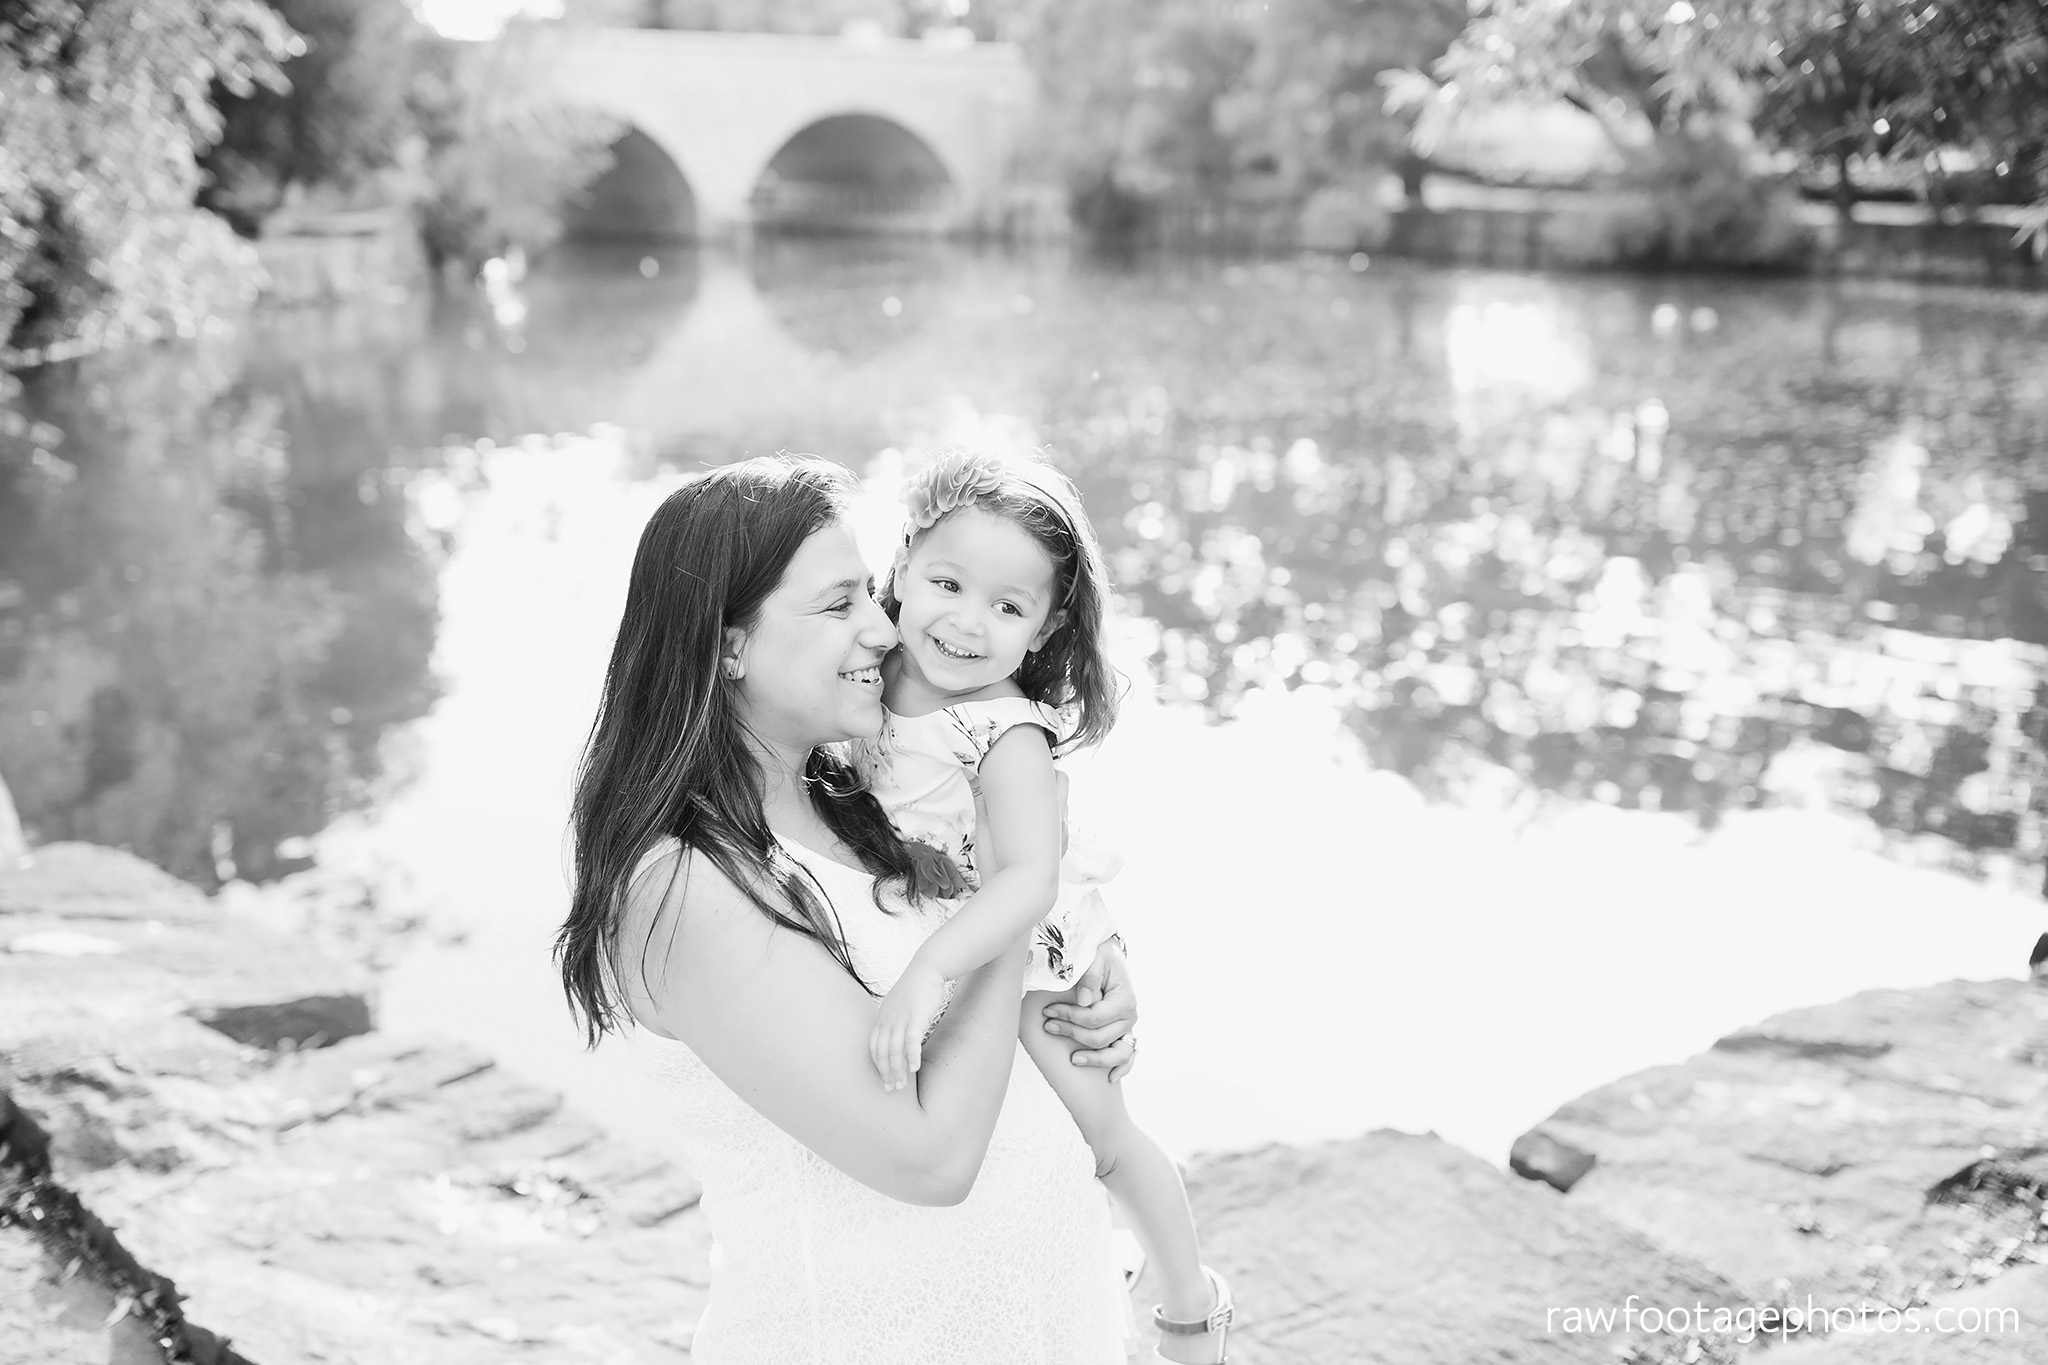 london_ontario_family_photographer-stratford_ontario_photographer-raw_footage_photography-lifestyle_photography-candid-golden_hour002.jpg